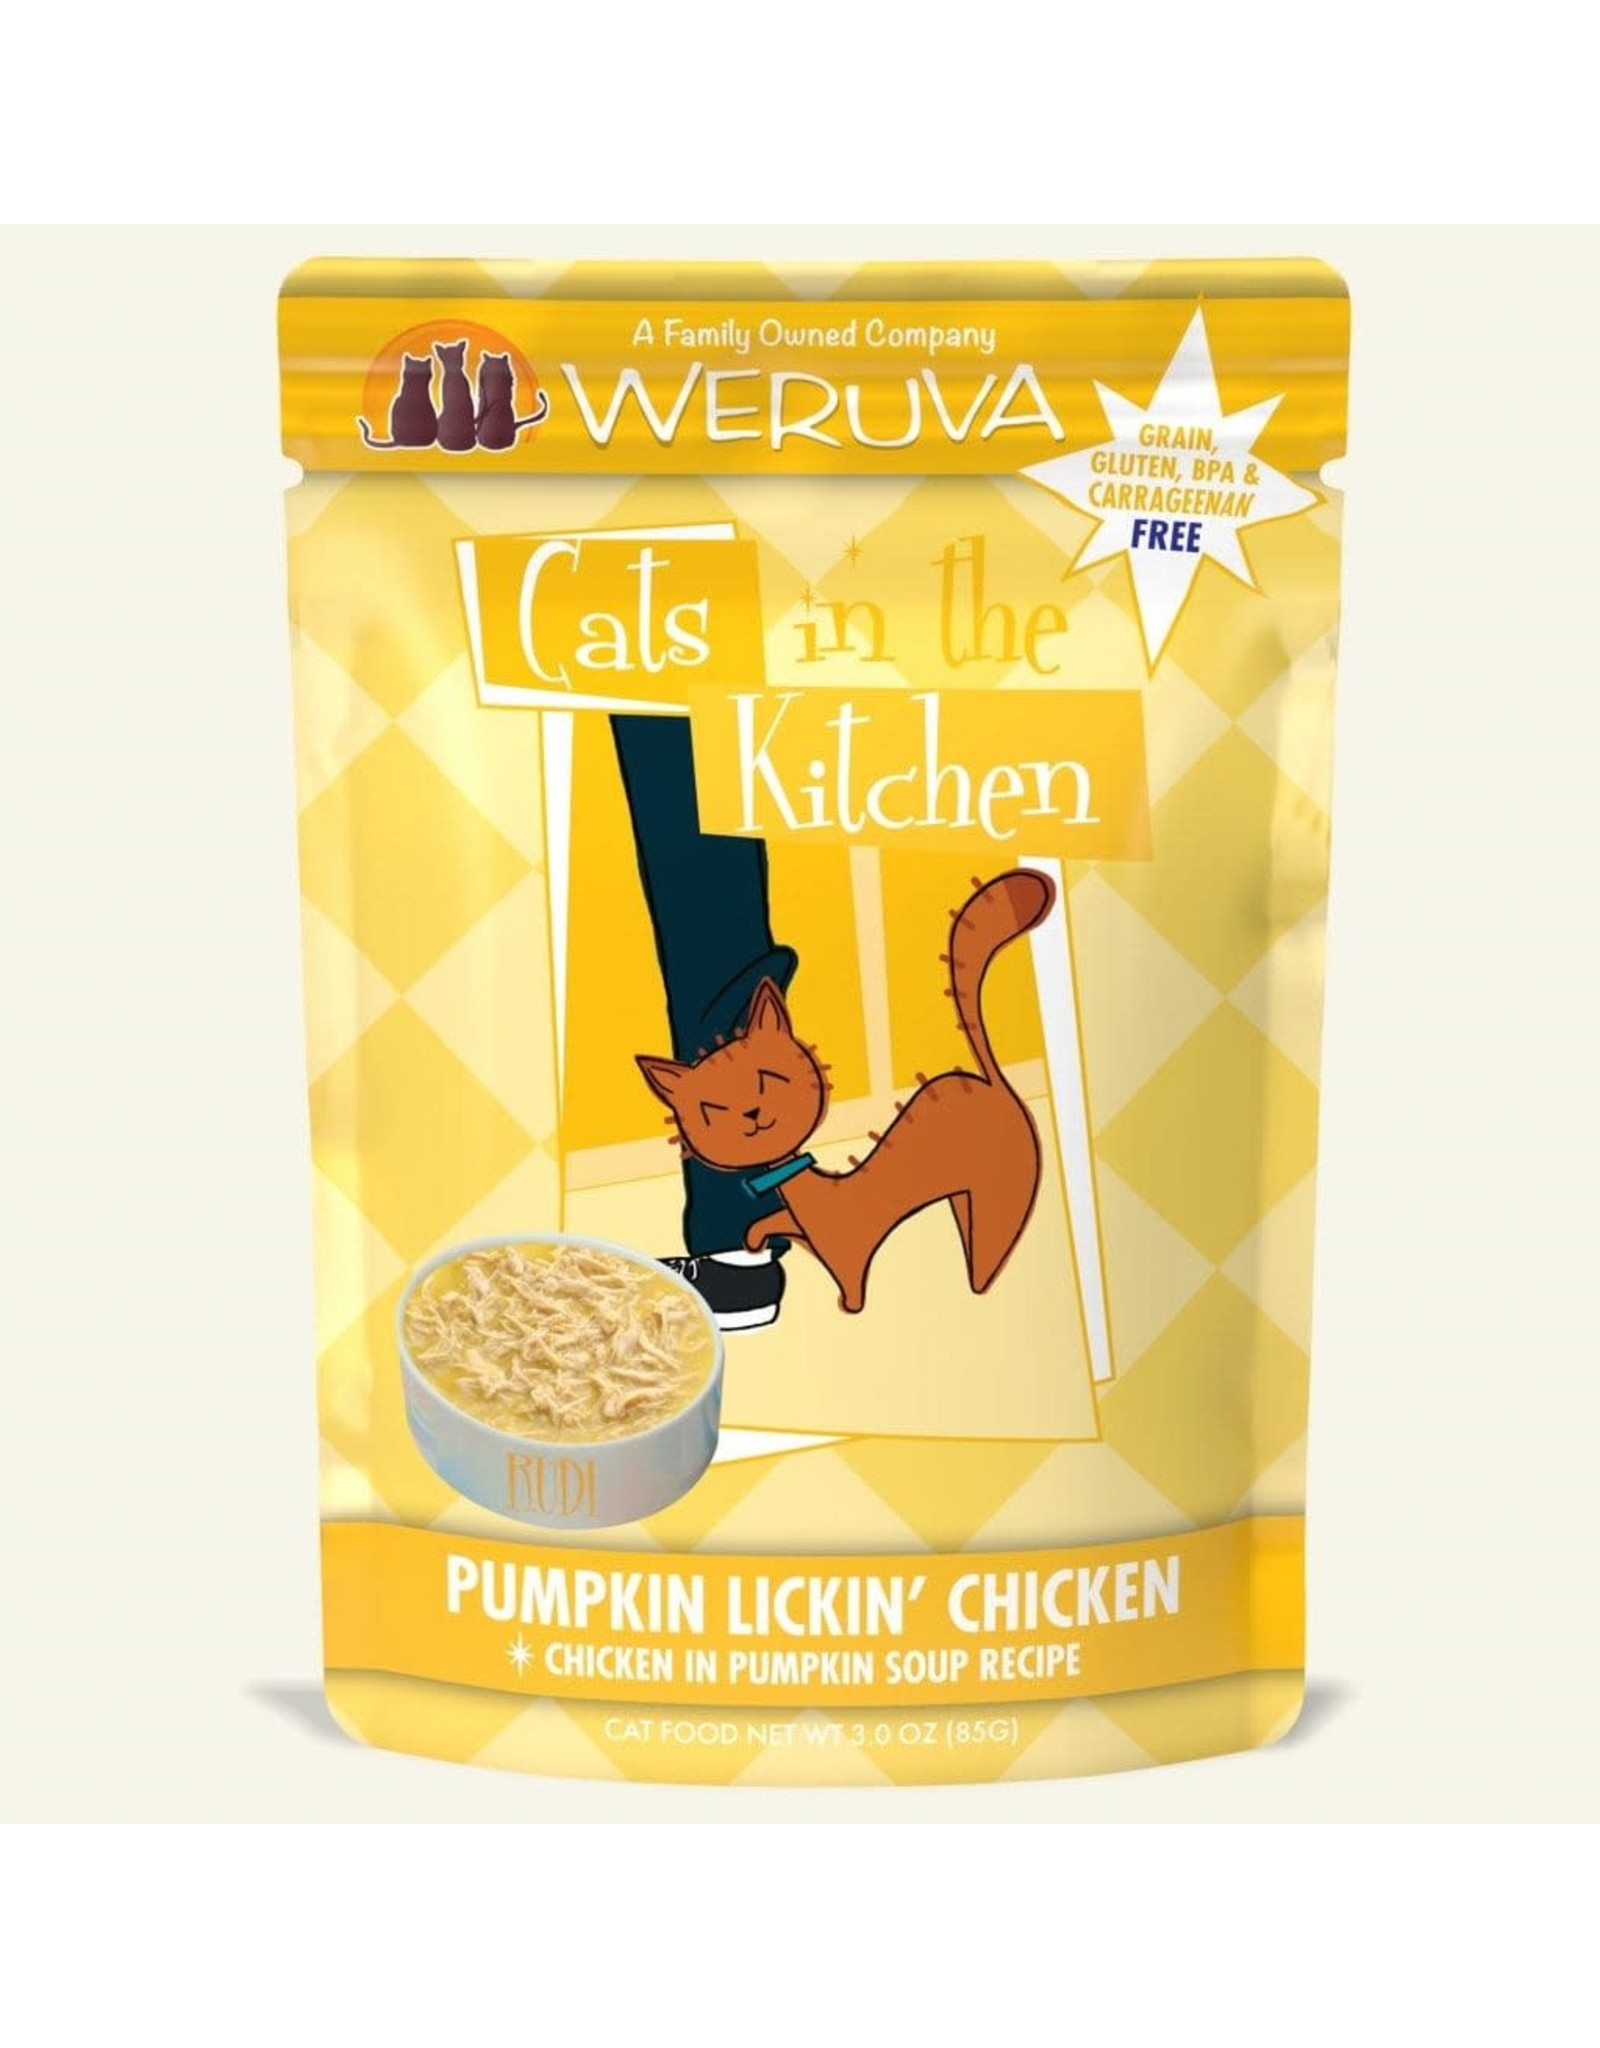 Weruva CITK Pouch - Pumpkin Lickin' Chicken 3oz